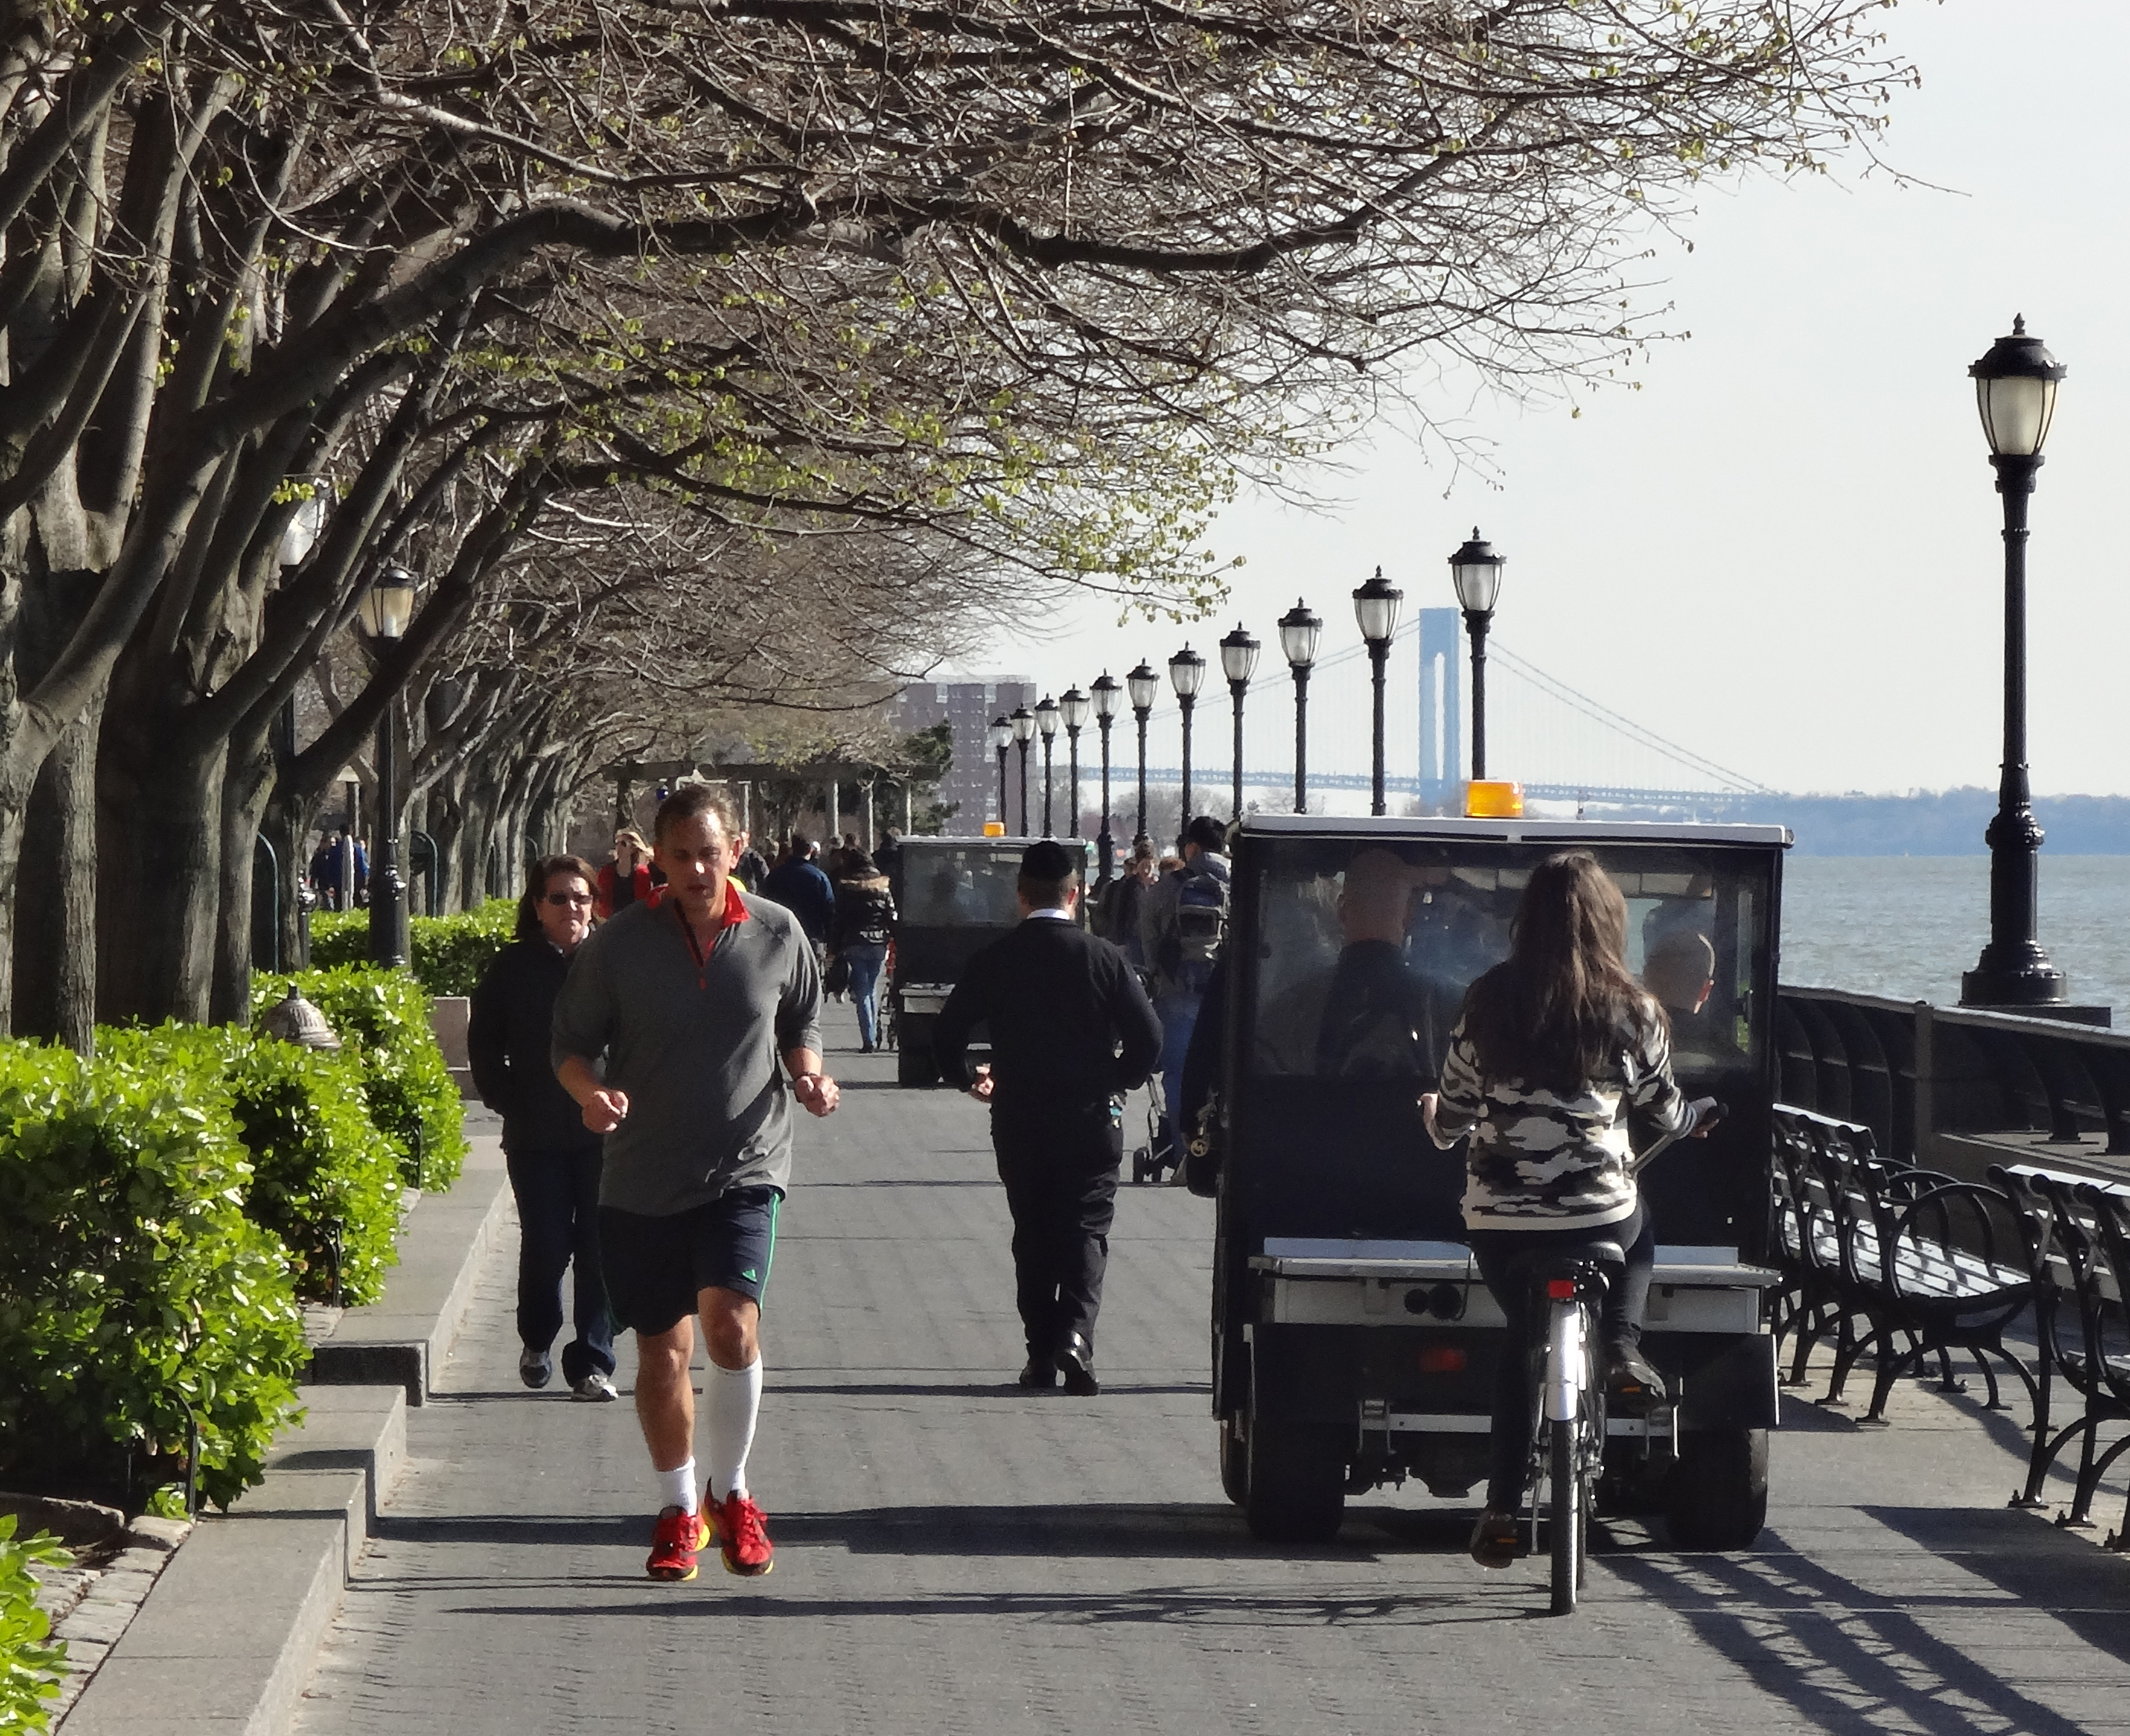 Esplanade and PEP joggers